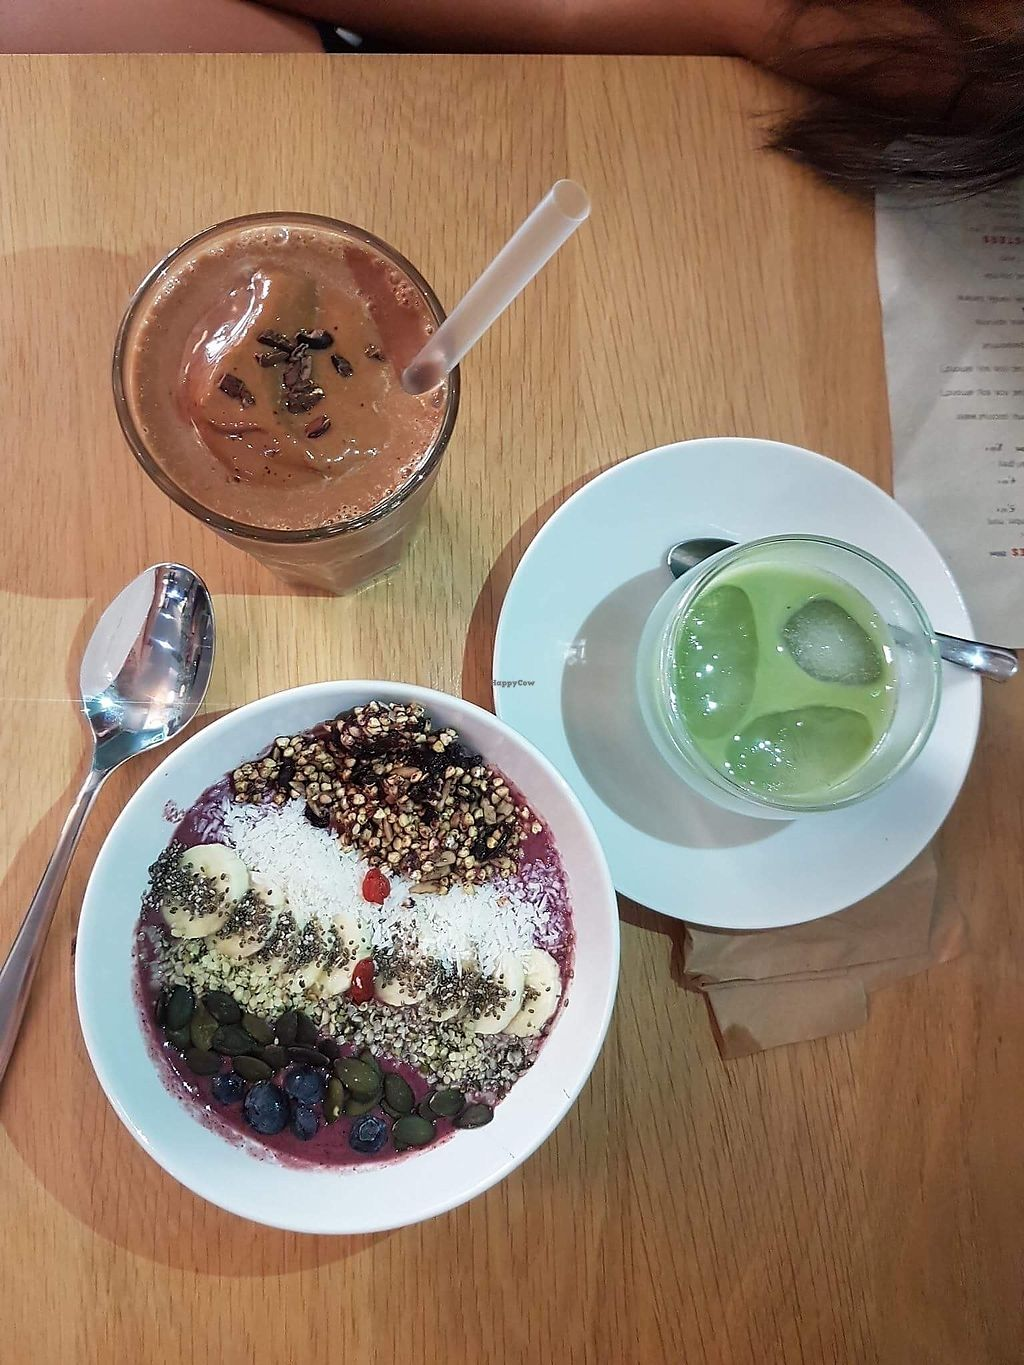 """Photo of KOKO Green  by <a href=""""/members/profile/DominikaBencsikova"""">DominikaBencsikova</a> <br/>This is what i had a couple of months ago in KOko green, a delicious acai smoothie bowl with gorgeous granola on top companied with the best cold matcha latte in the city (no joking, i have tasted it in a couple of places and this is just great!) and my a cocoa smoothie :) great great and again great! <br/> November 13, 2017  - <a href='/contact/abuse/image/75042/325194'>Report</a>"""